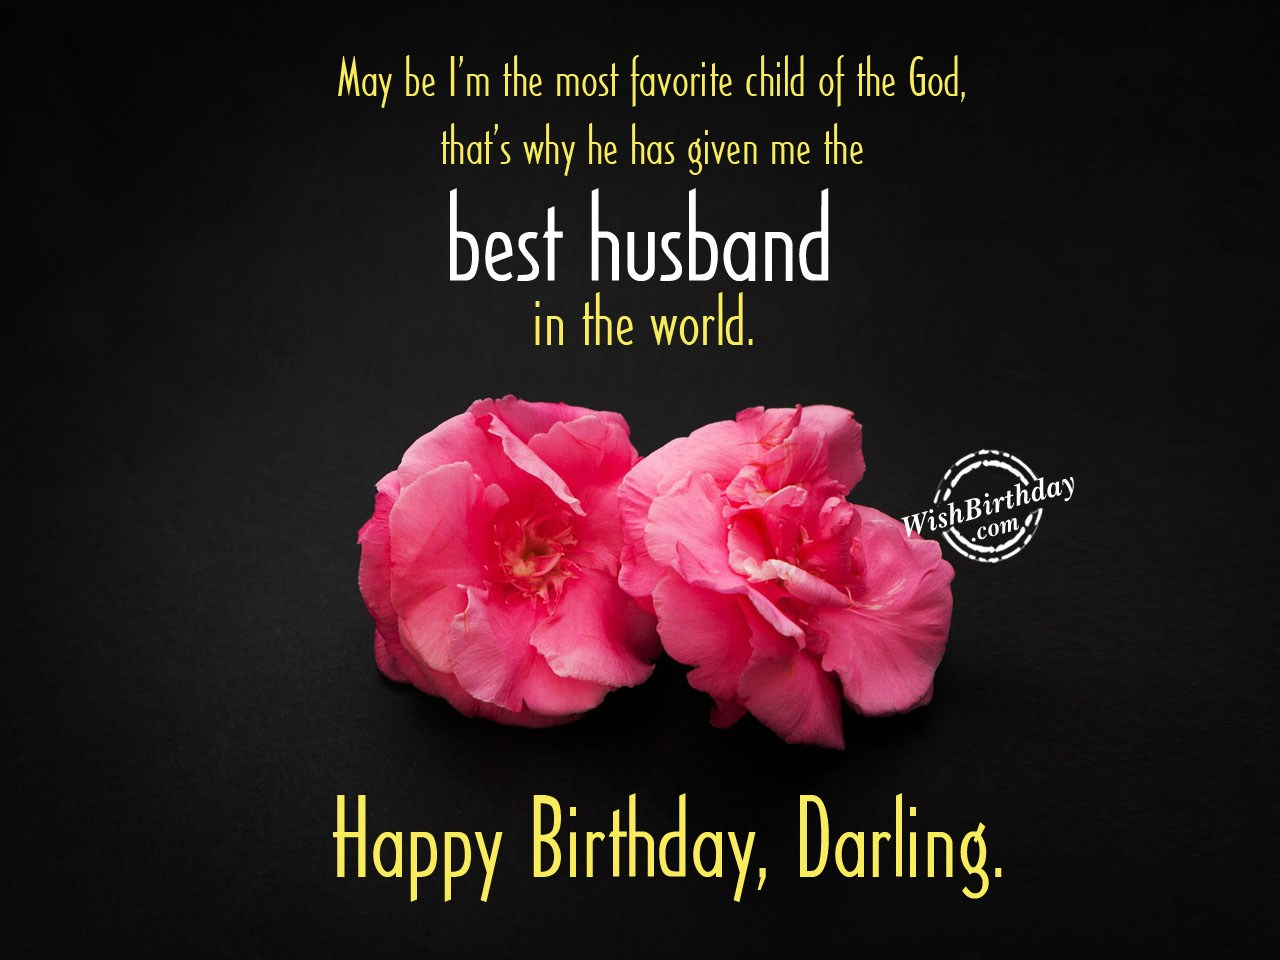 birthday wishes card for husband ; May-be-i-am-the-most-favorite-child-of-the-God